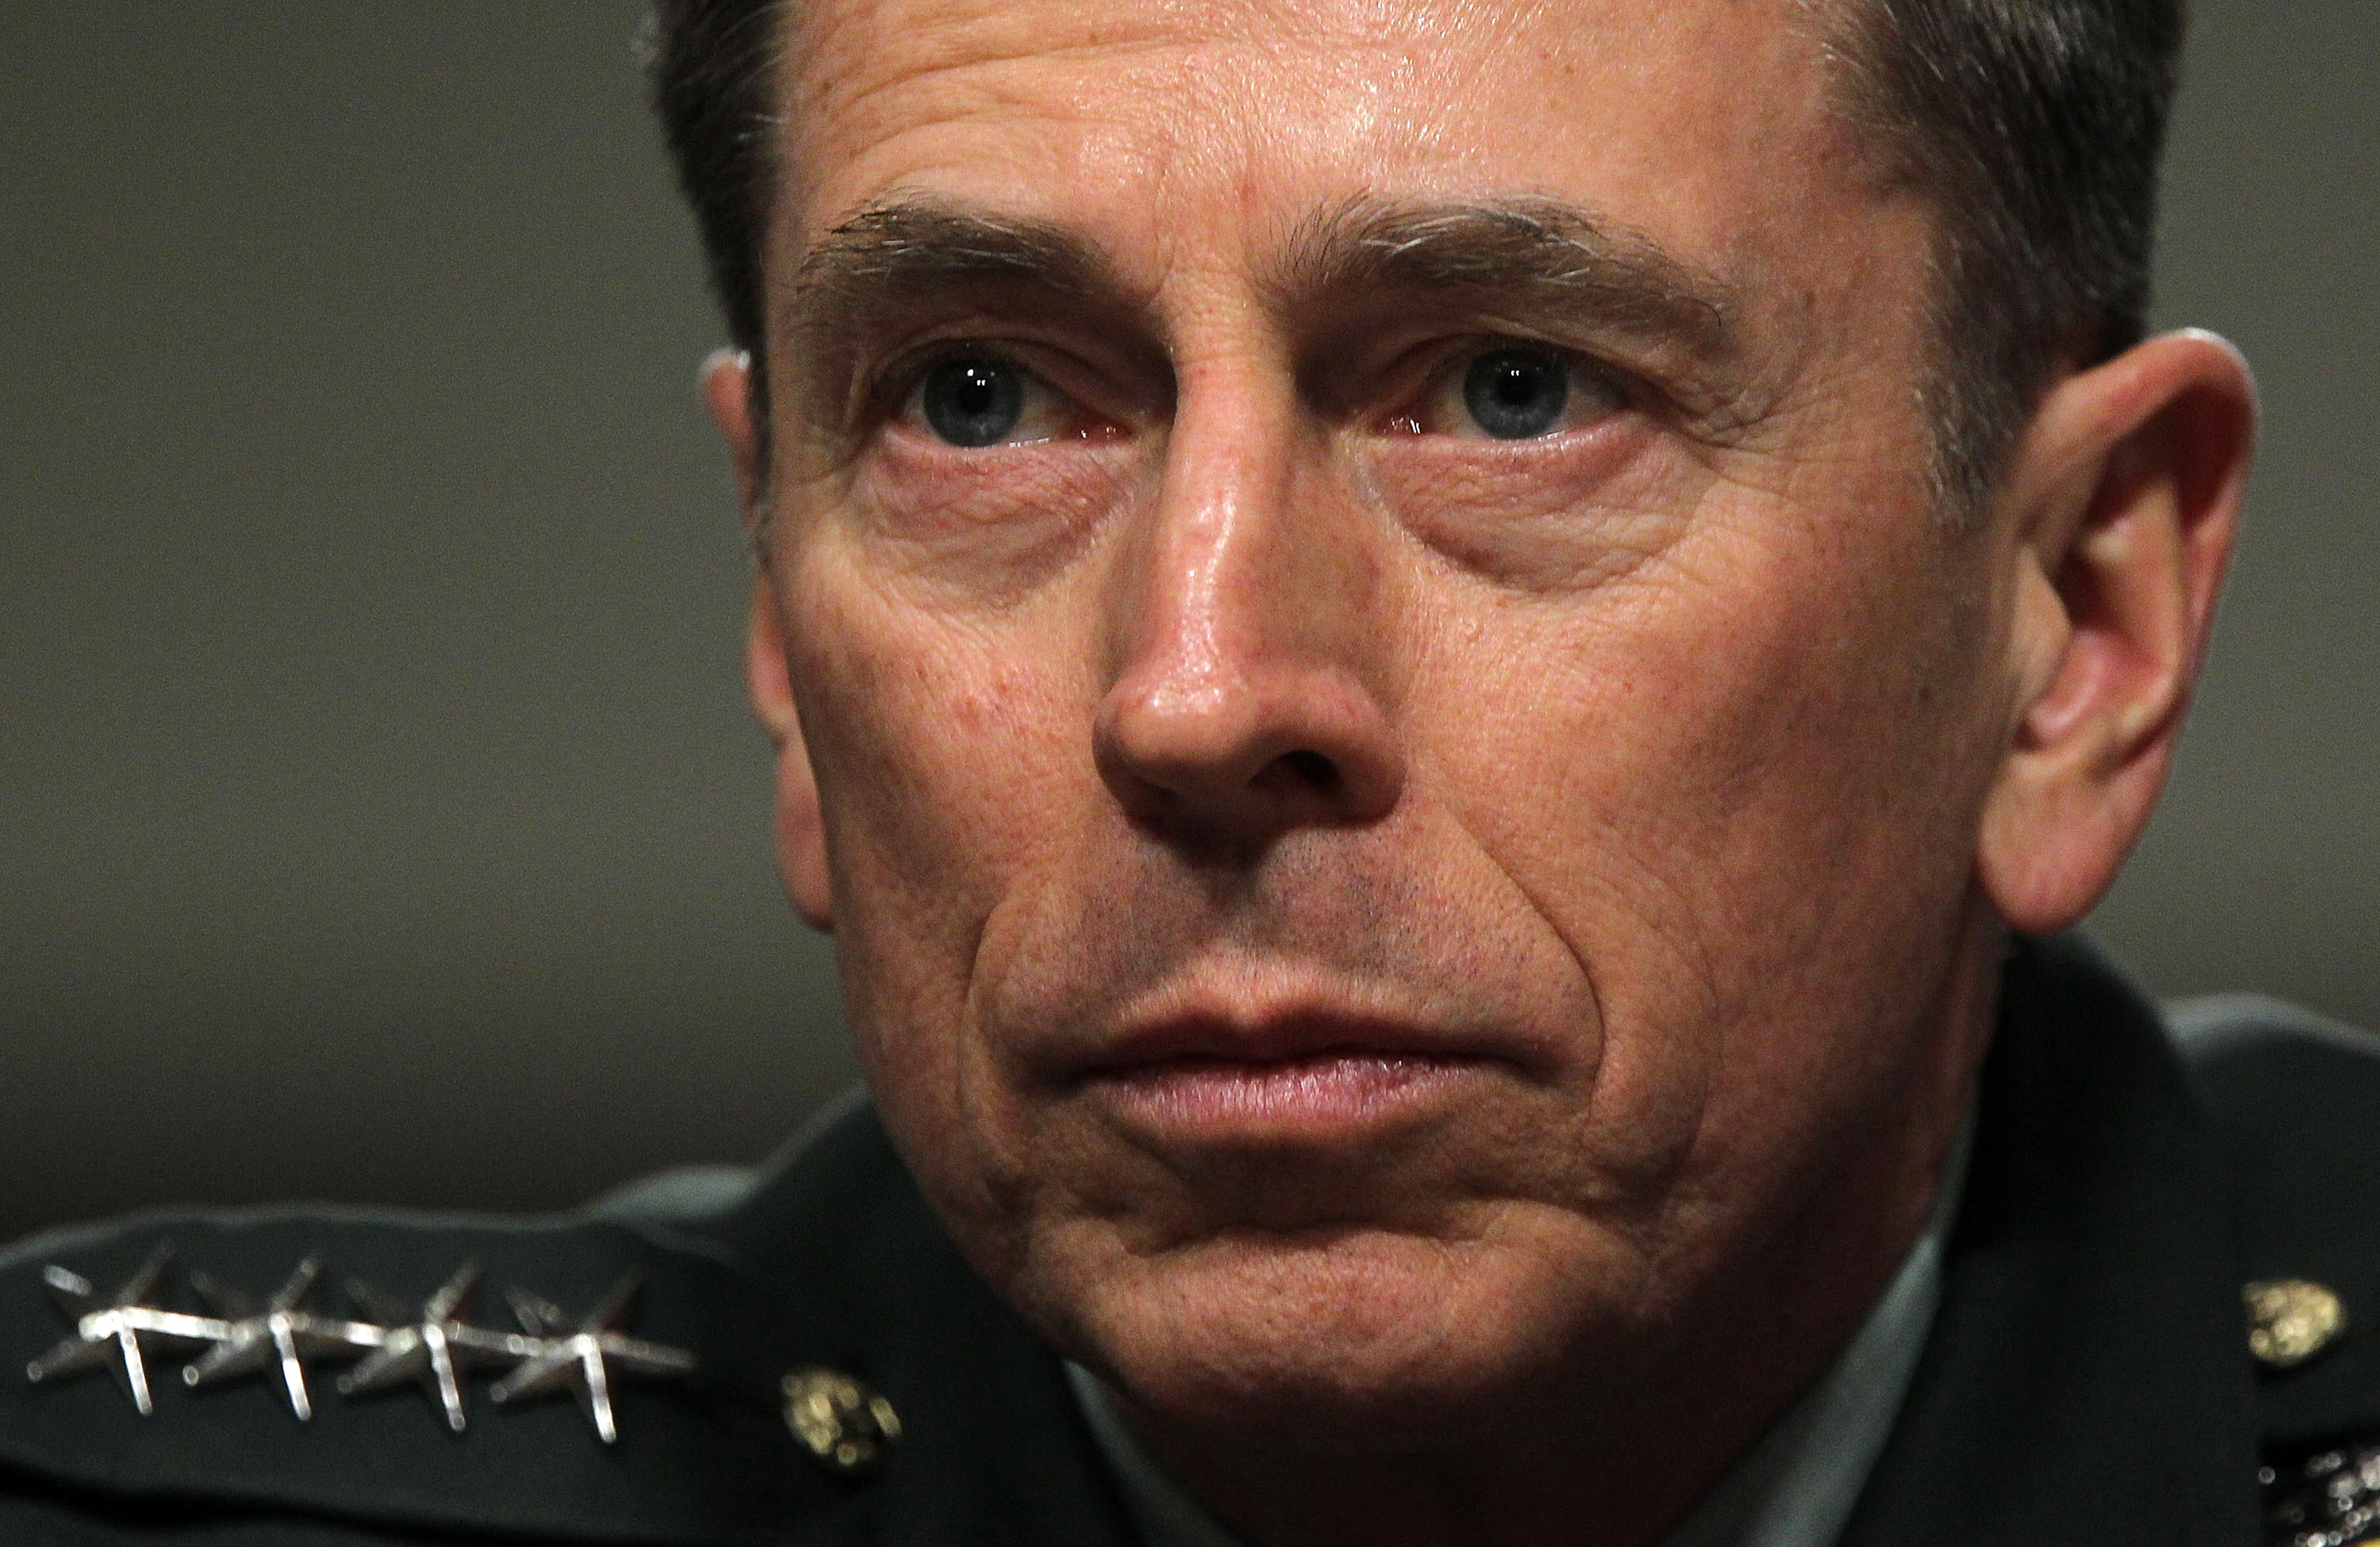 Petraeus comes to Washington with troop drawdown recommendation